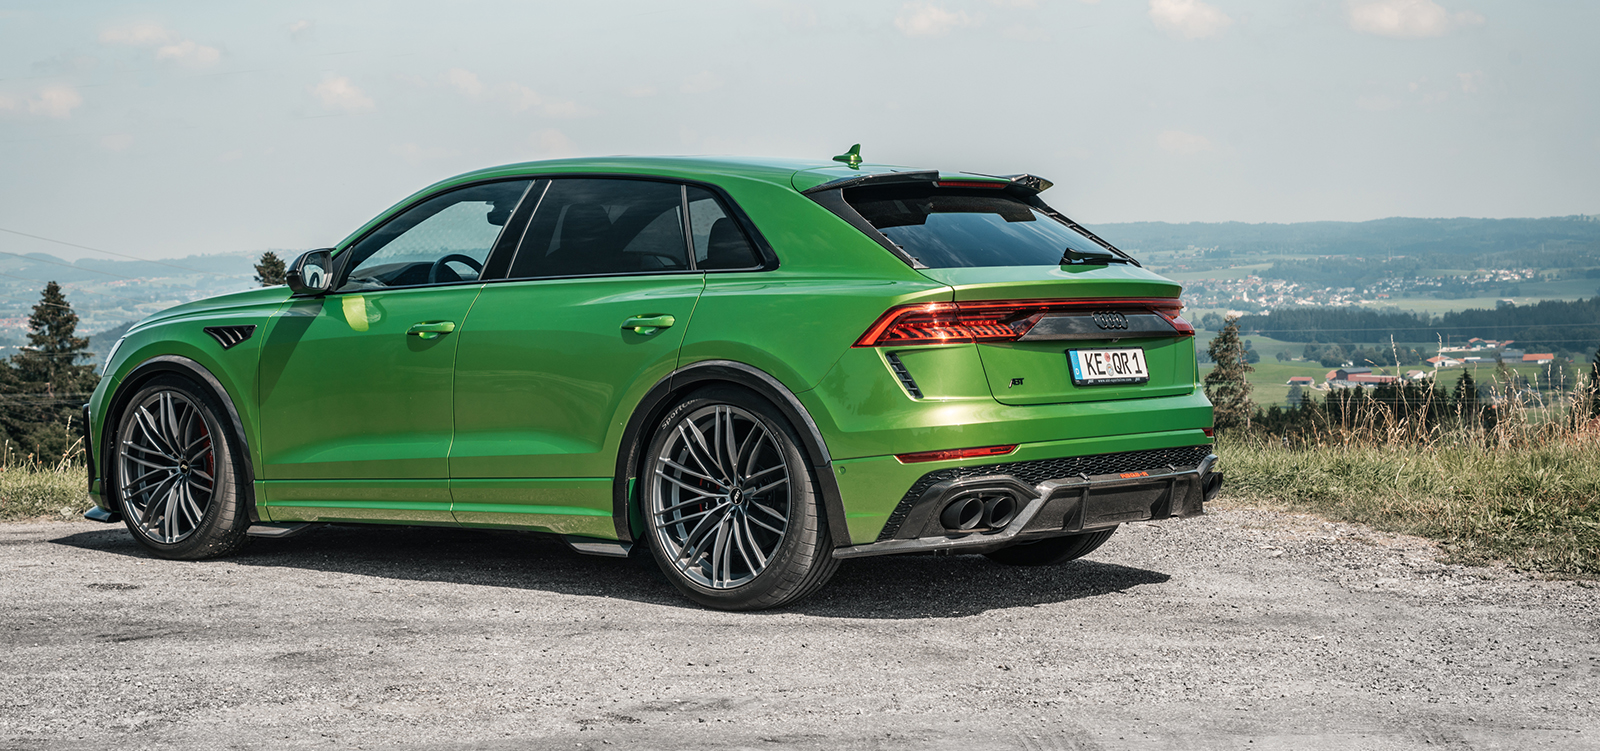 ABT_RSQ8-R_green_HR23_landscape_rear_diagonally